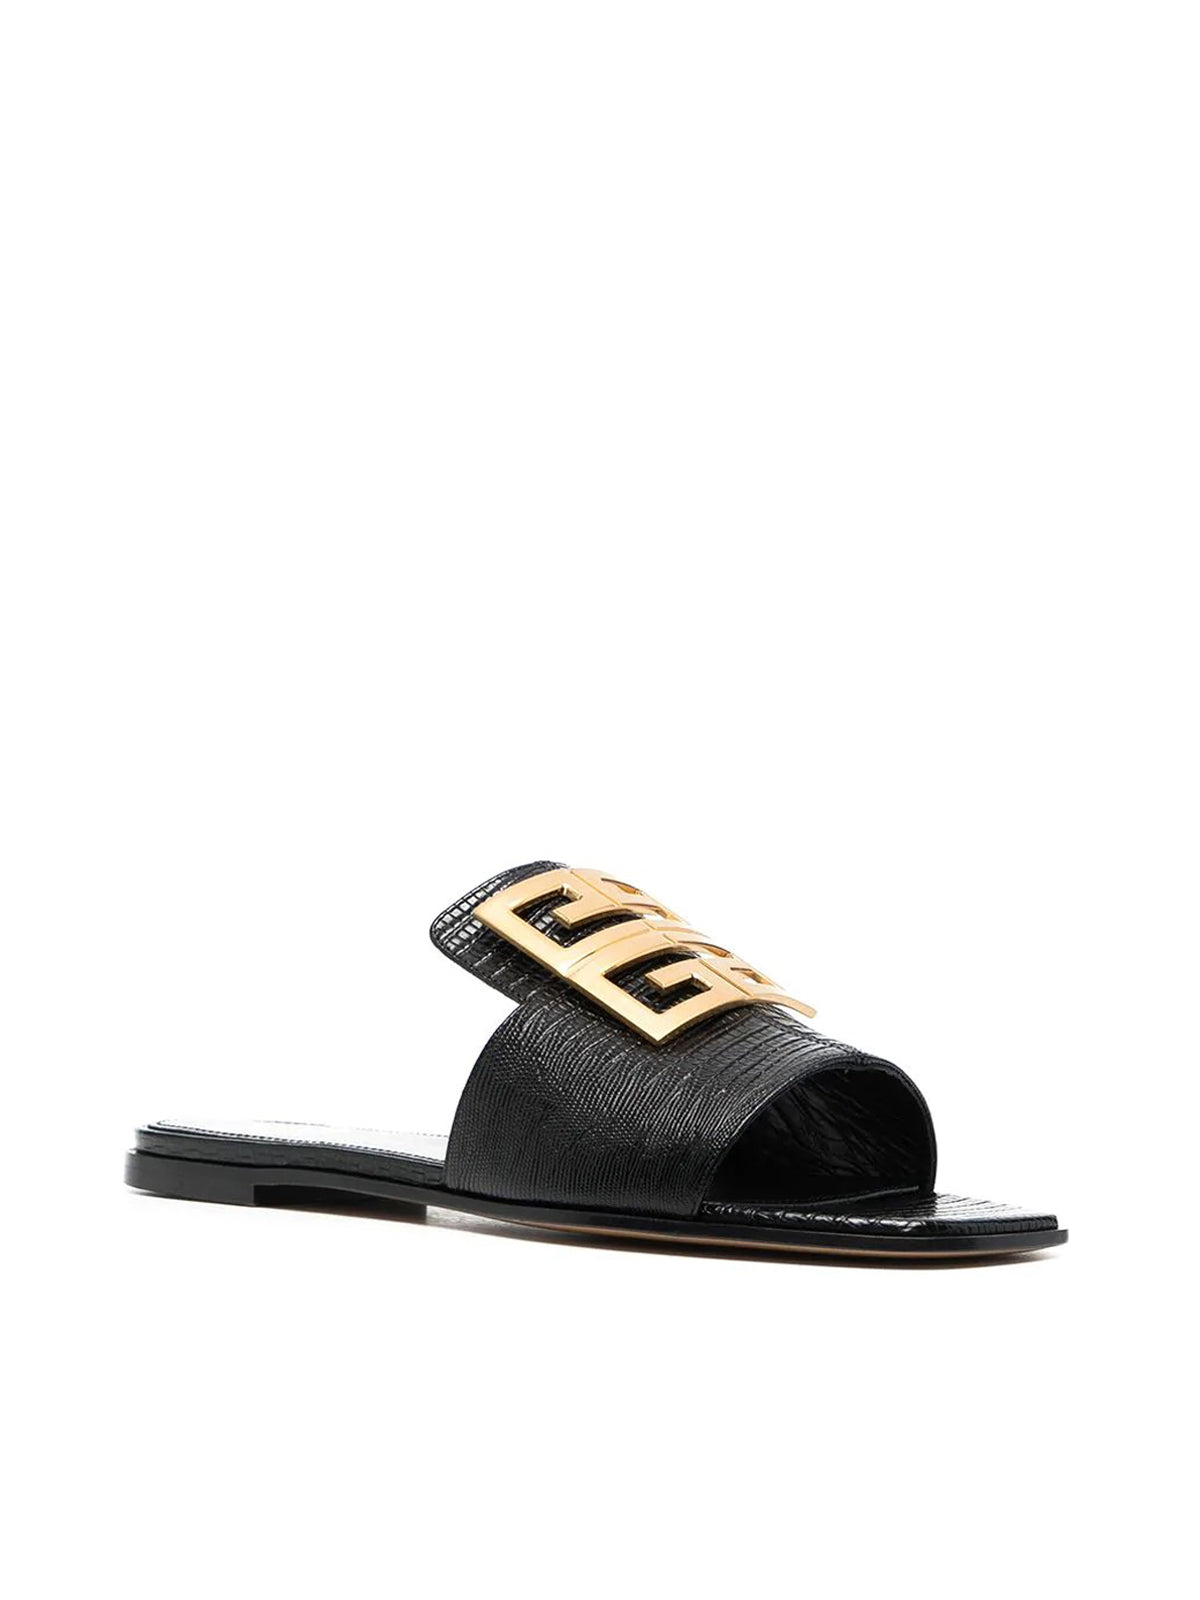 4G leather sandals